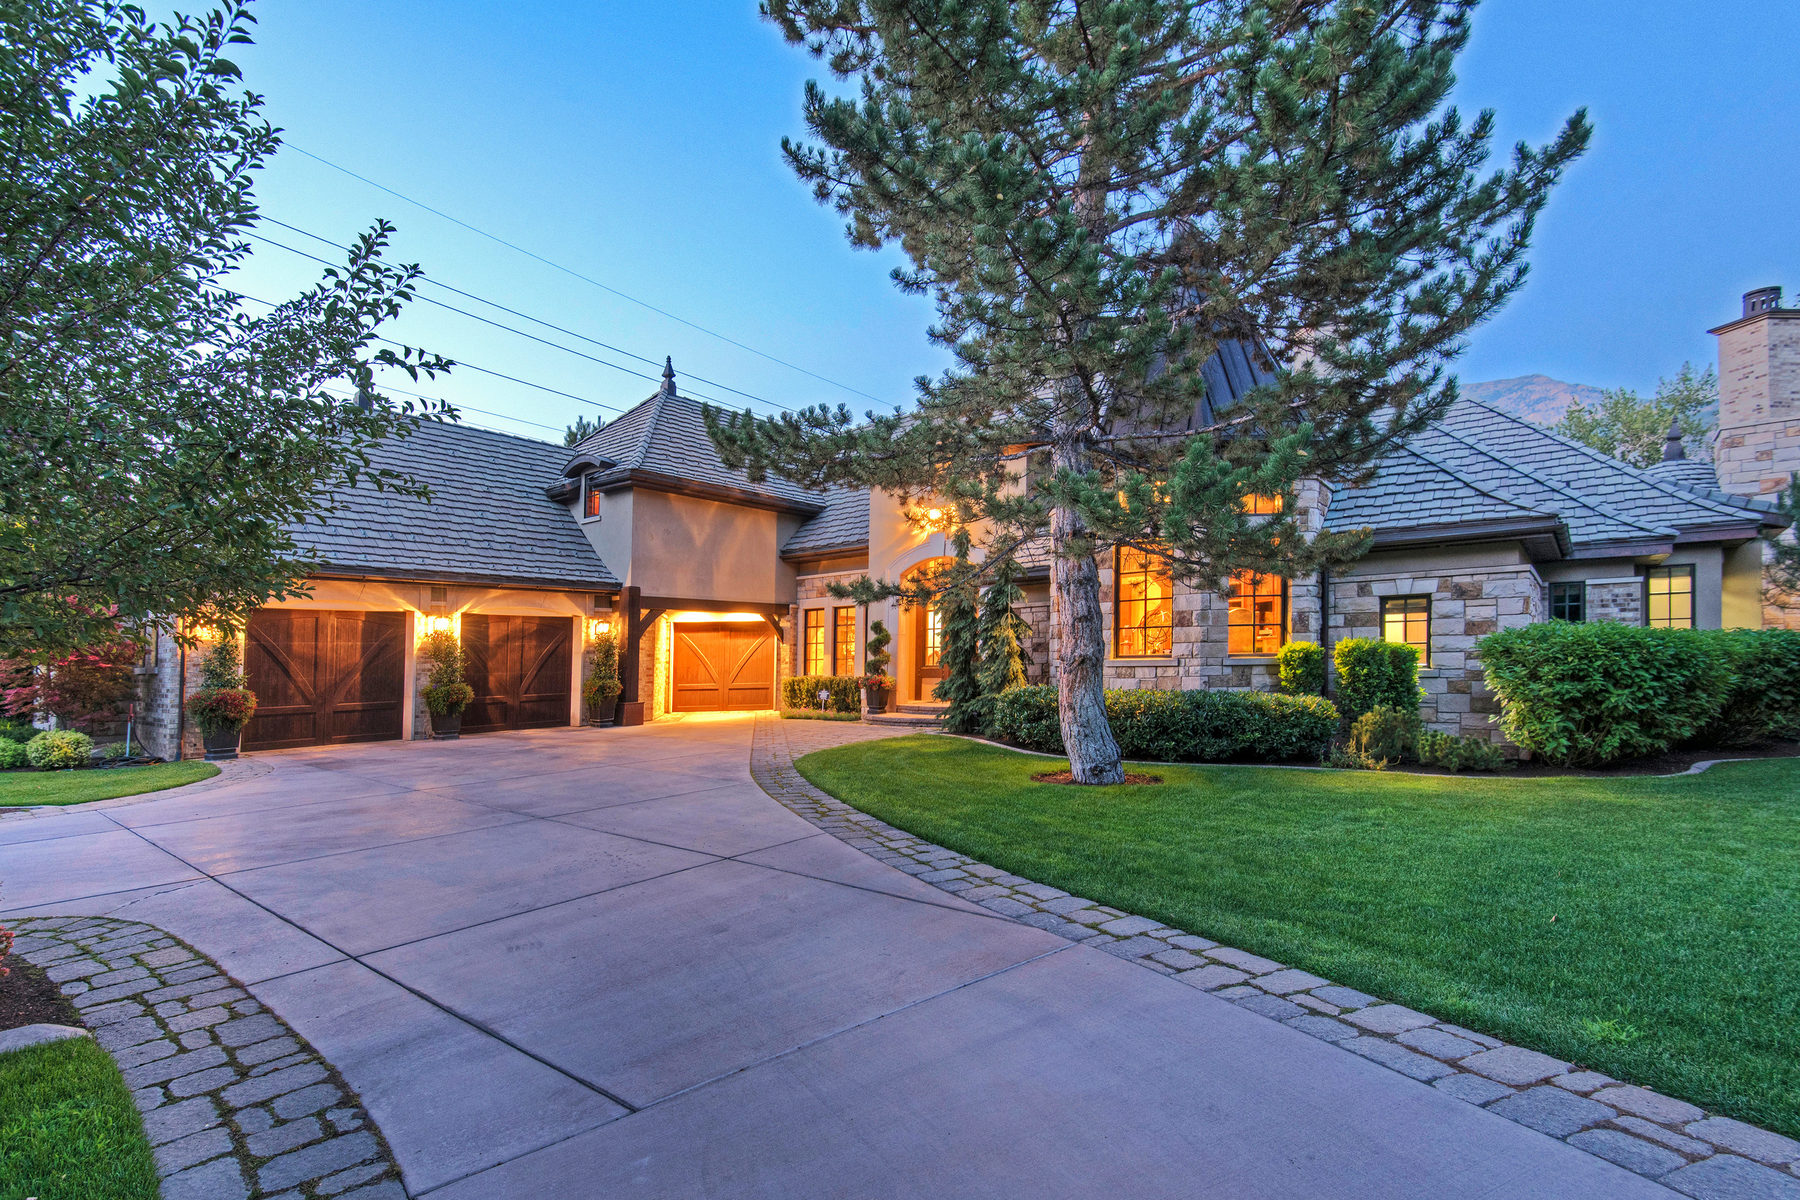 独户住宅 为 销售 在 Riverfront Estate with Views of Mt. Timpanogos 815 South 1100 East Orem, 犹他州 84097 美国